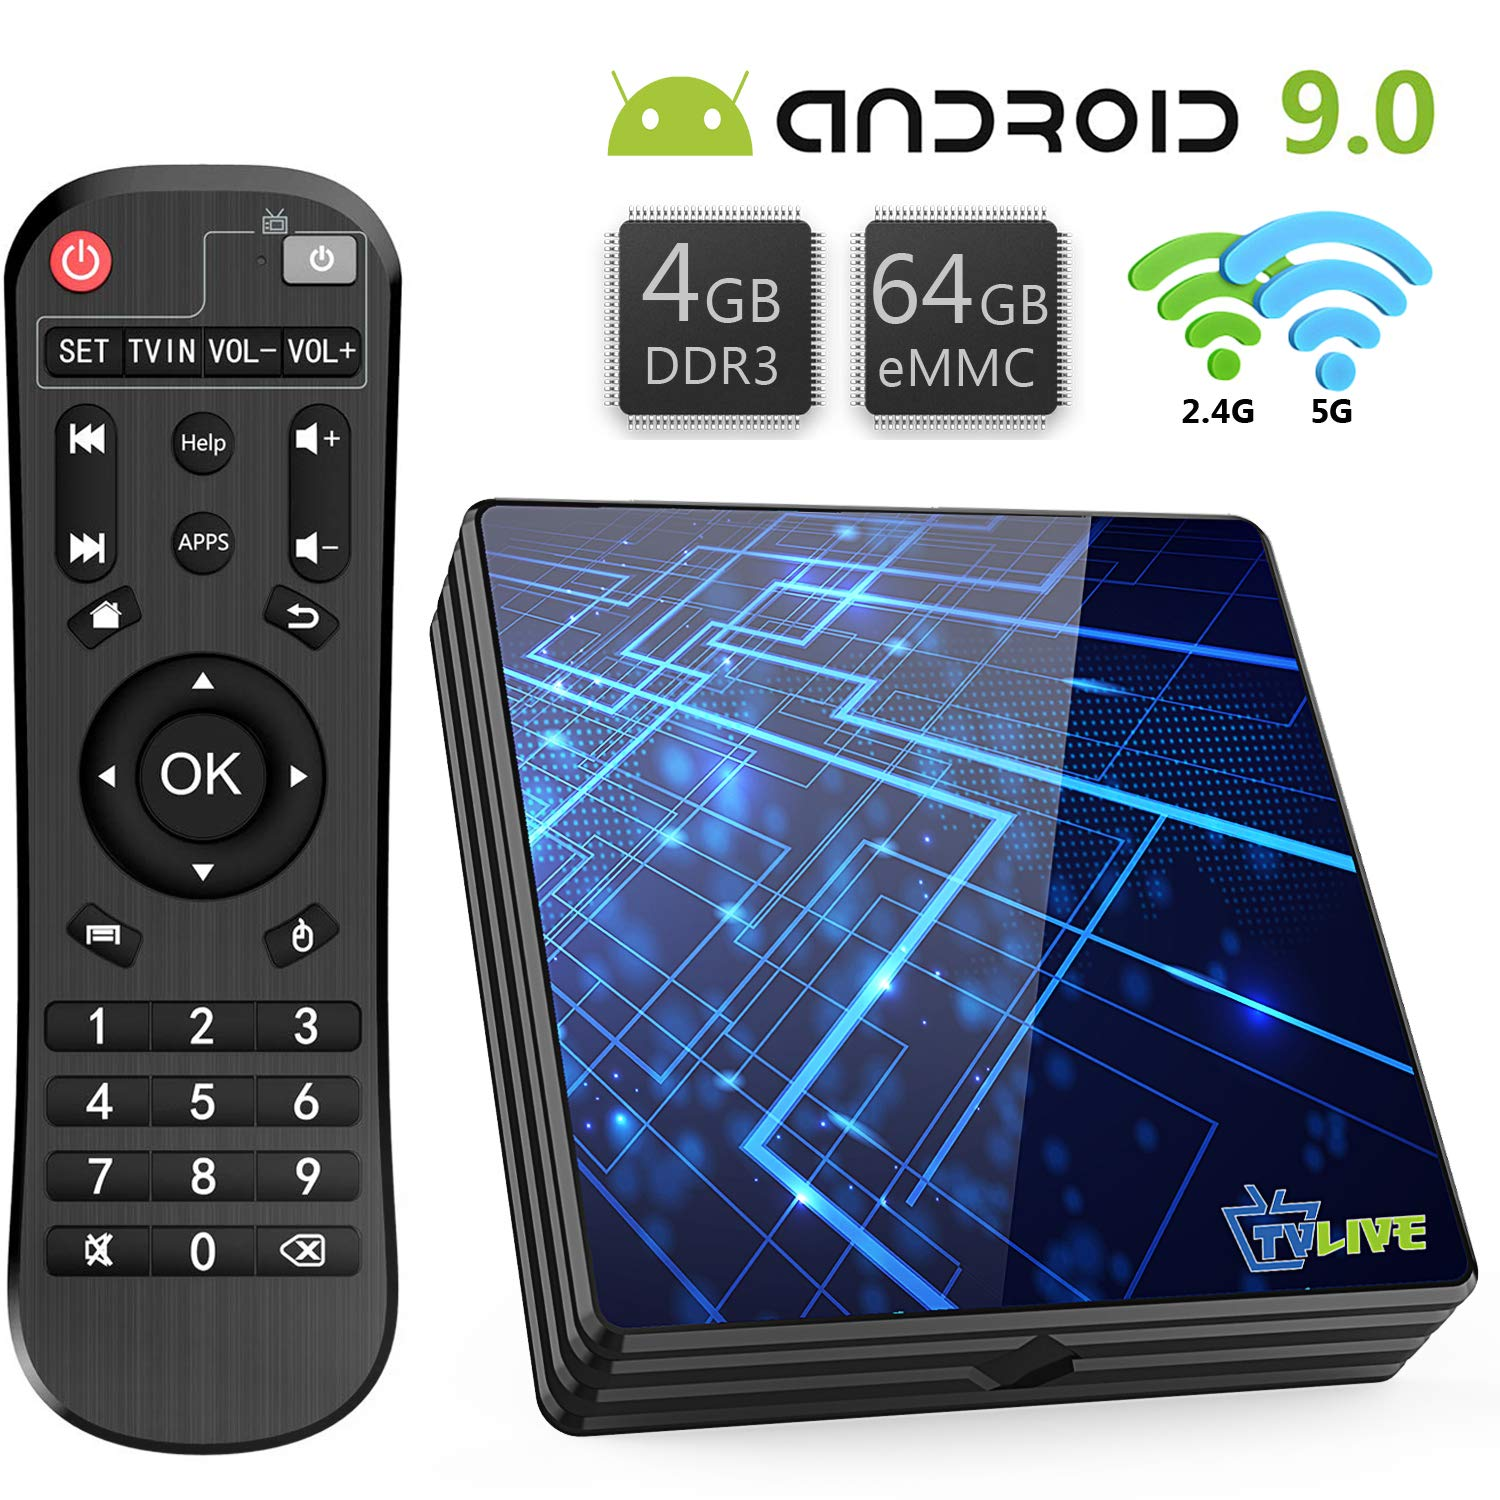 Android TV Box 9.0【4GB RAM+64GB ROM】 Livebox TV Box RK3318 Quad-Core 64bit Cortex-A53 Soporte 2k*4K, WiFi 2.4G/5G,BT 4.1, USB 3.0 Smart TV Box: Amazon.es: Electrónica